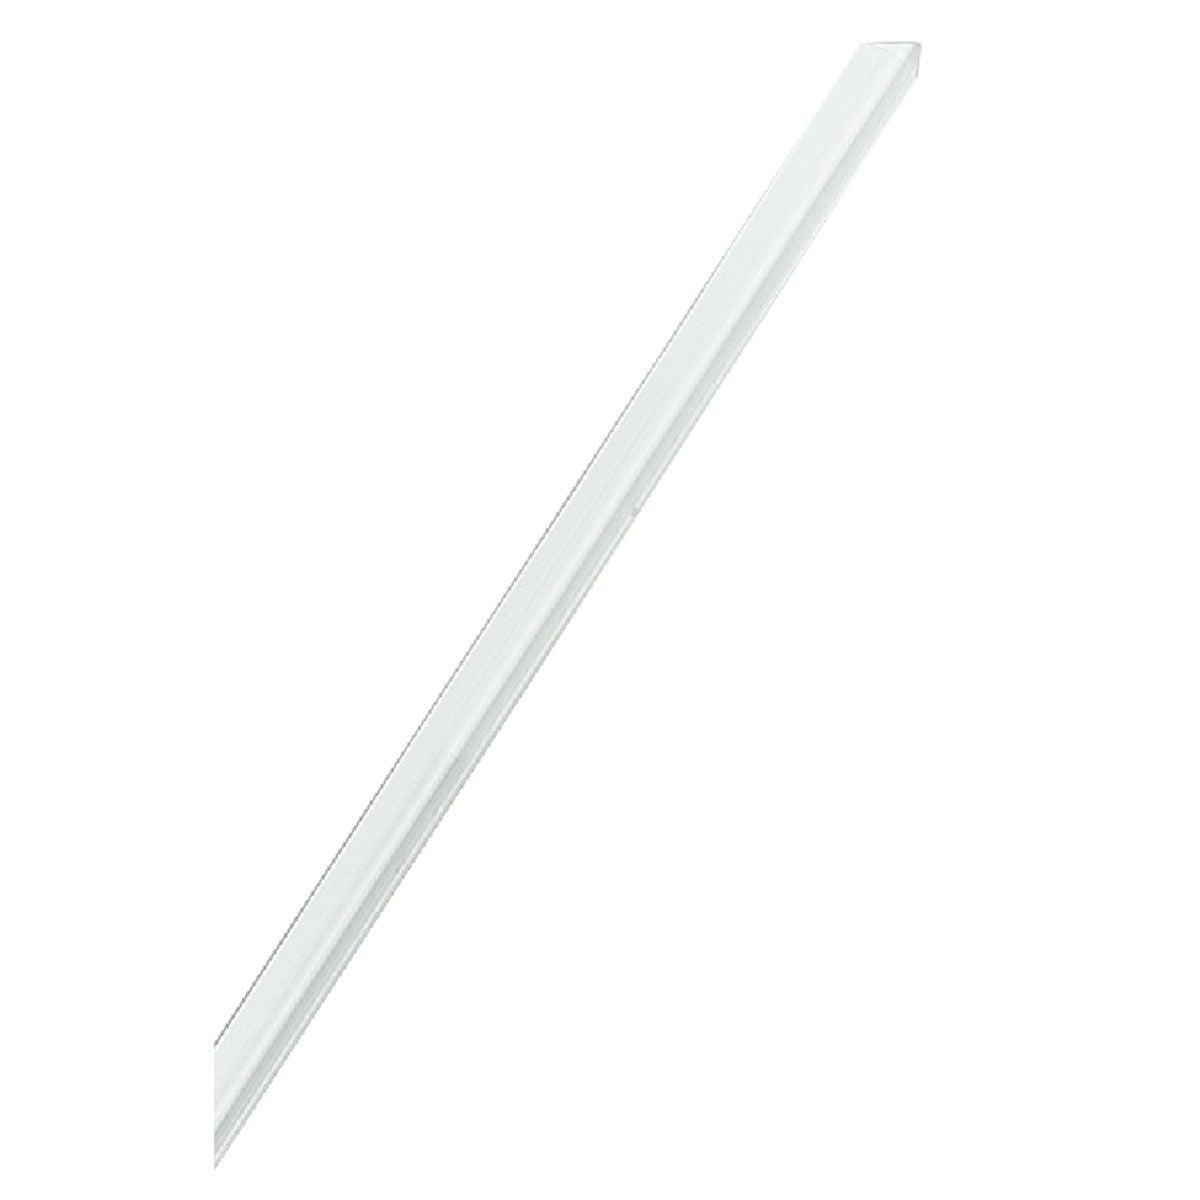 8' CLR NAIL CORNERGUARD - 834 by Wall Protex